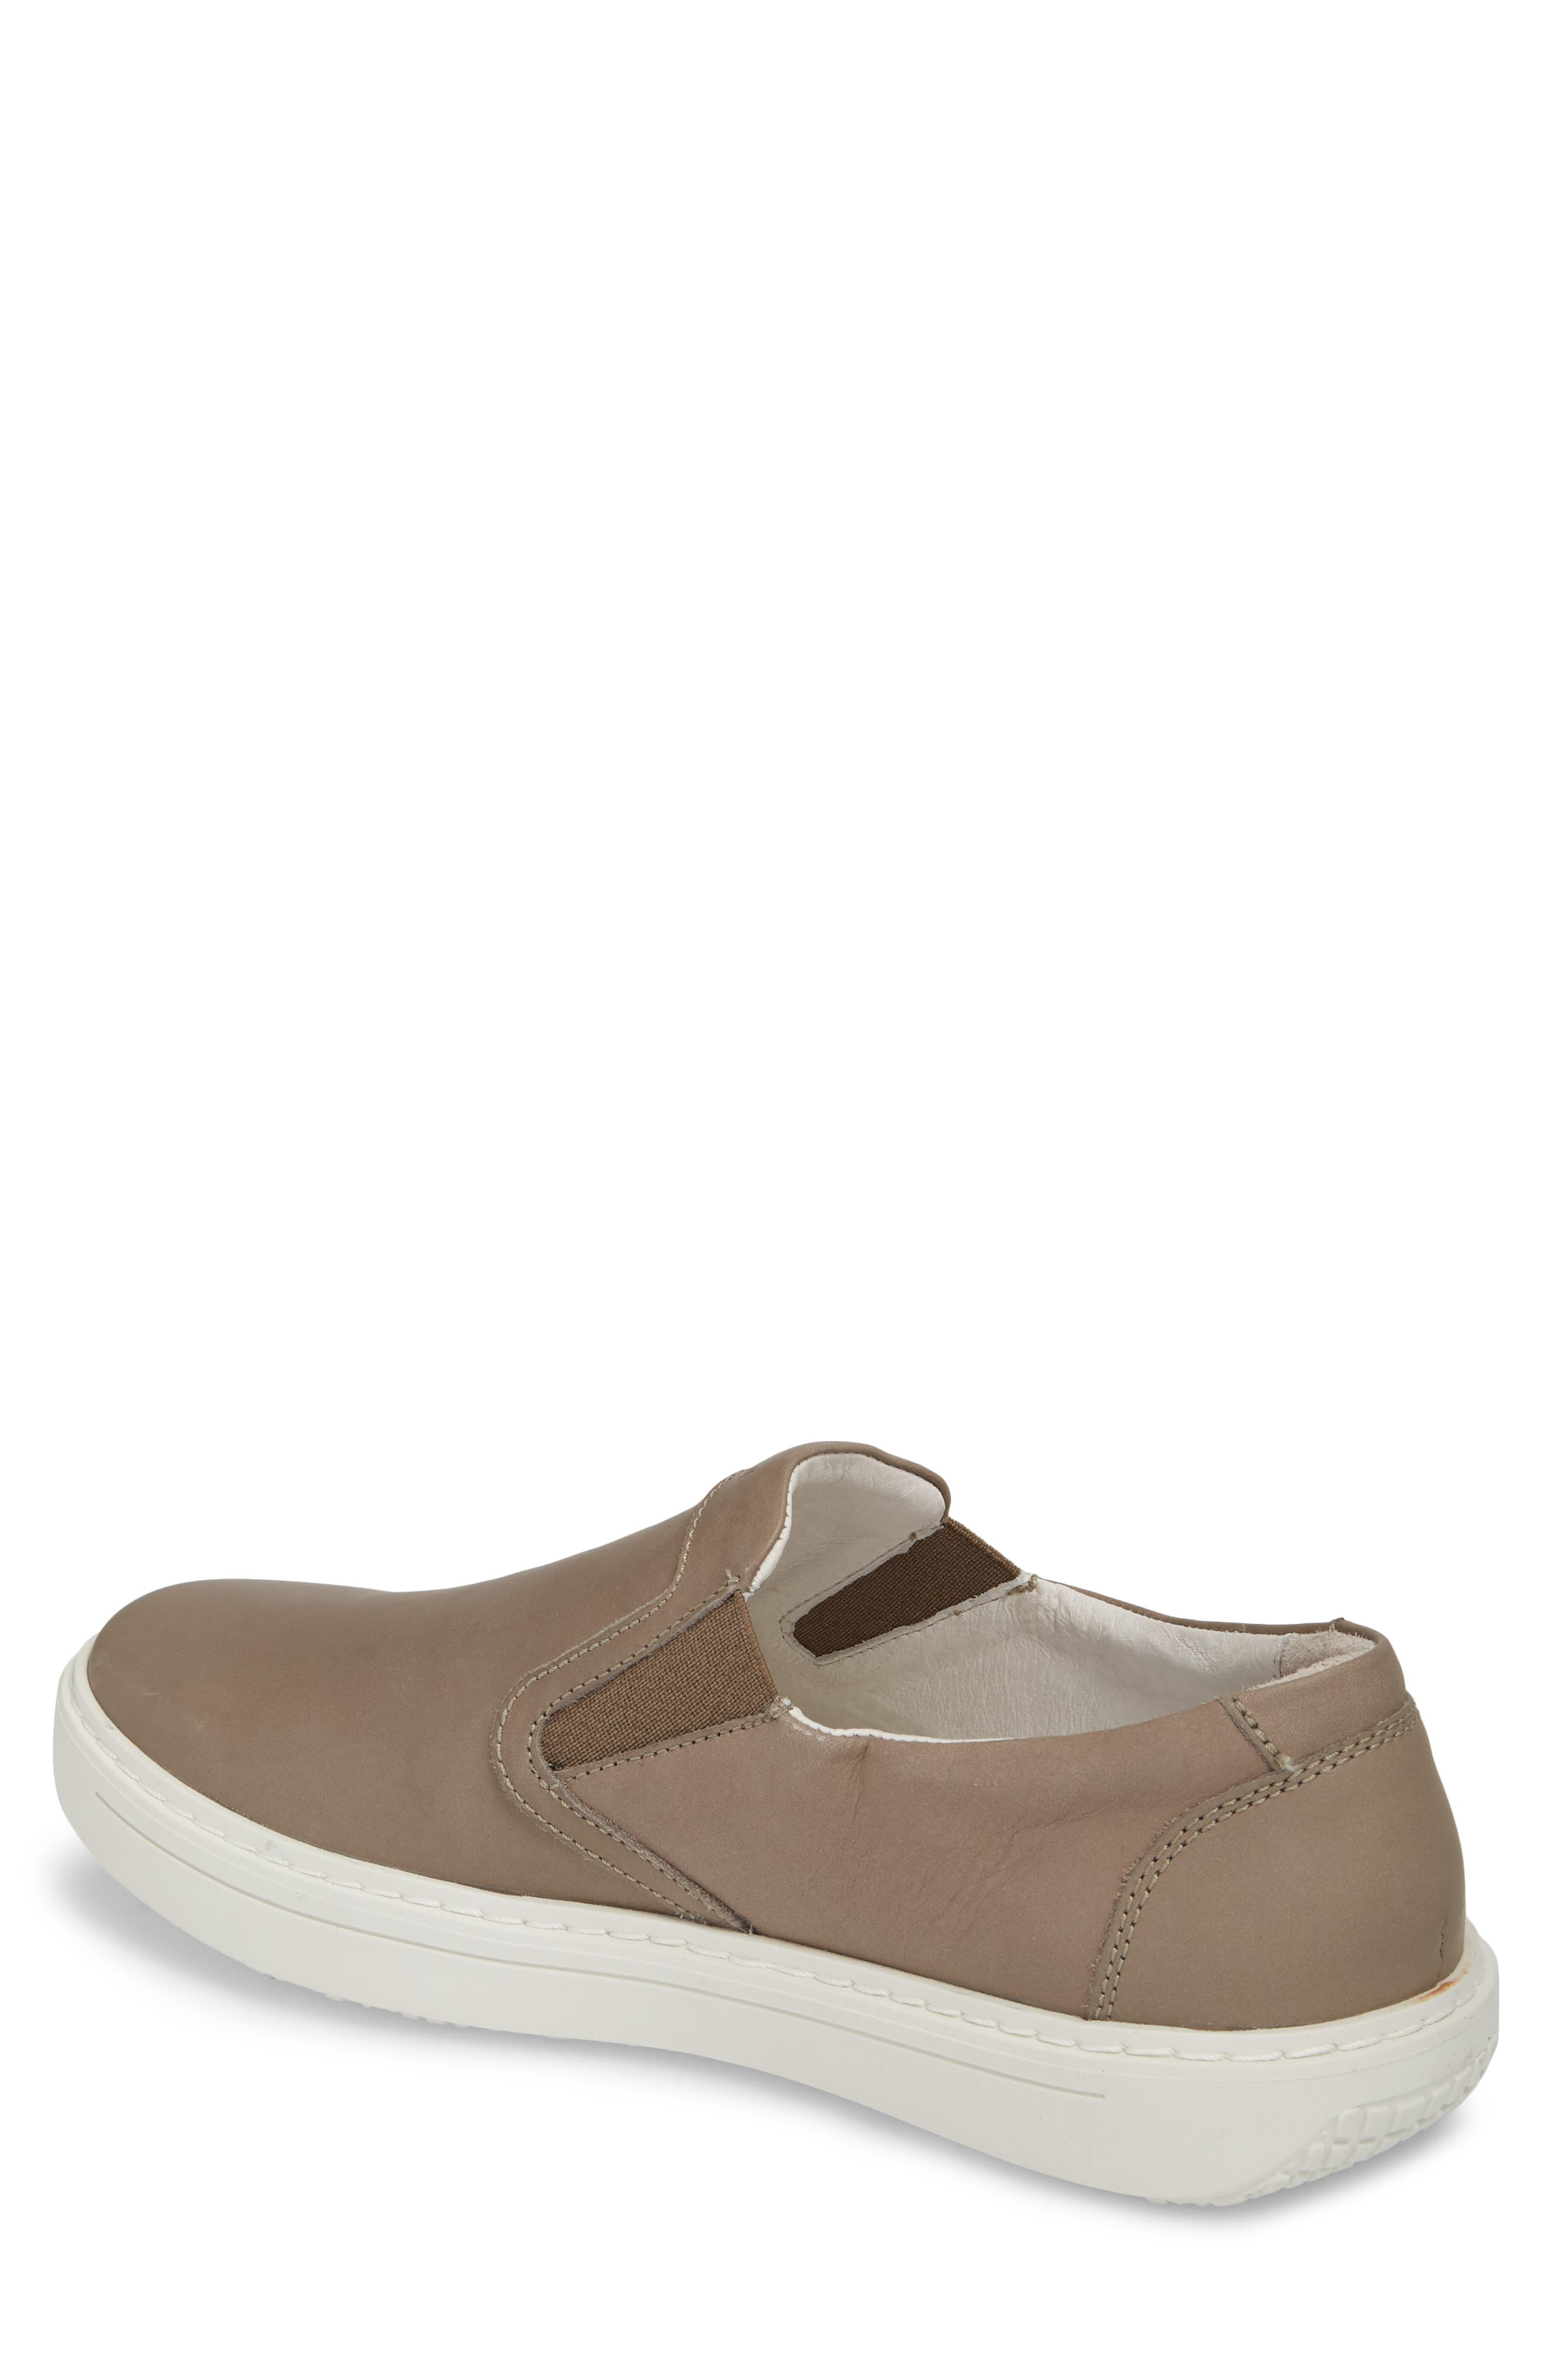 Quentin 15 Slip-On Sneaker,                             Alternate thumbnail 2, color,                             GRAY LEATHER